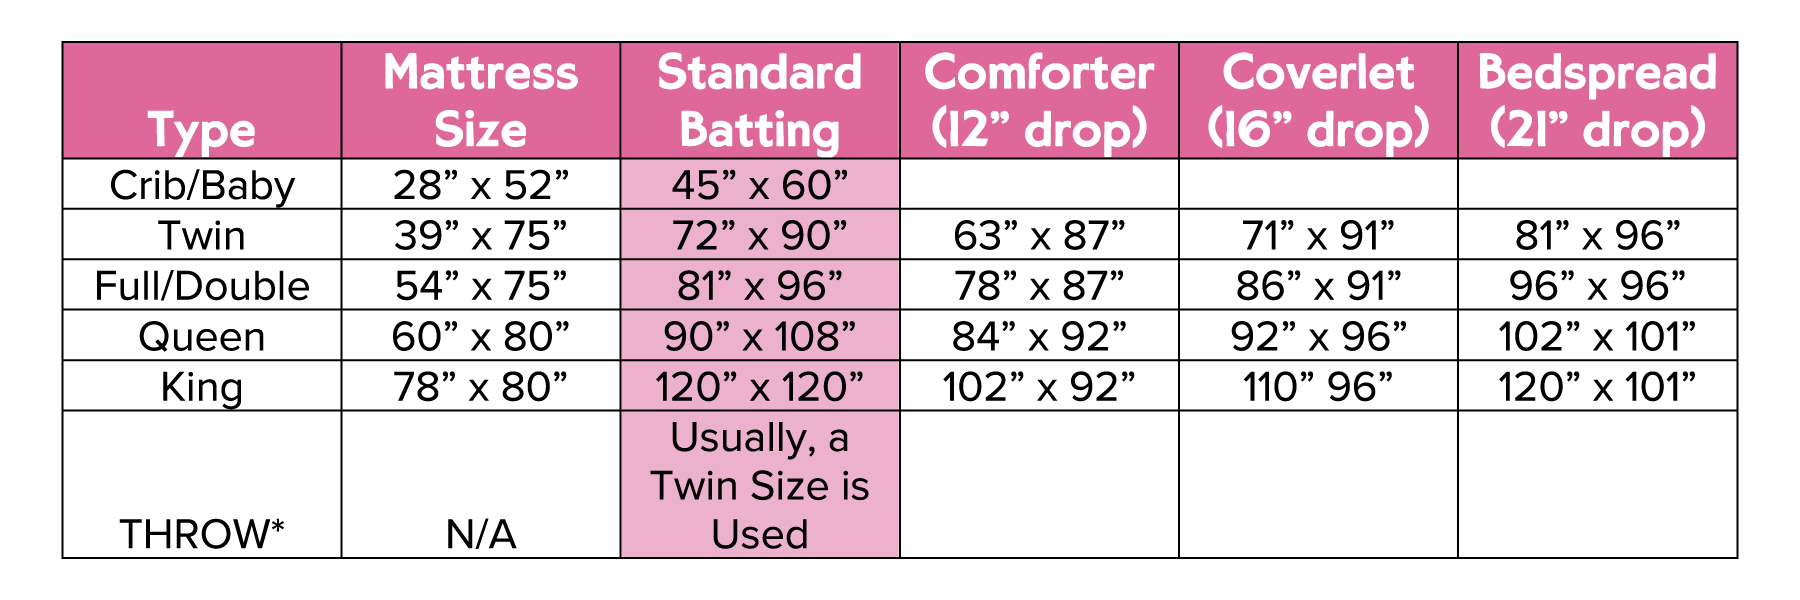 standard quilt sizes, standard mattress sizes, planning out a quilt top, how to measure a quilt top, quilt top sizes, mattress sizes, quilt size chart, designing a quilt top, standard bed sizes, standard comforter sizes, standard batting sizes, quilt batting sizes, standard quilt batting sizes, how much batting do I need for my quilt, batting size for my quilt, batting for my longarm quilter, batting for my longarmer, quilt tutorial, learn to quilt, learn to design a quilt, how do I design my own quilt top